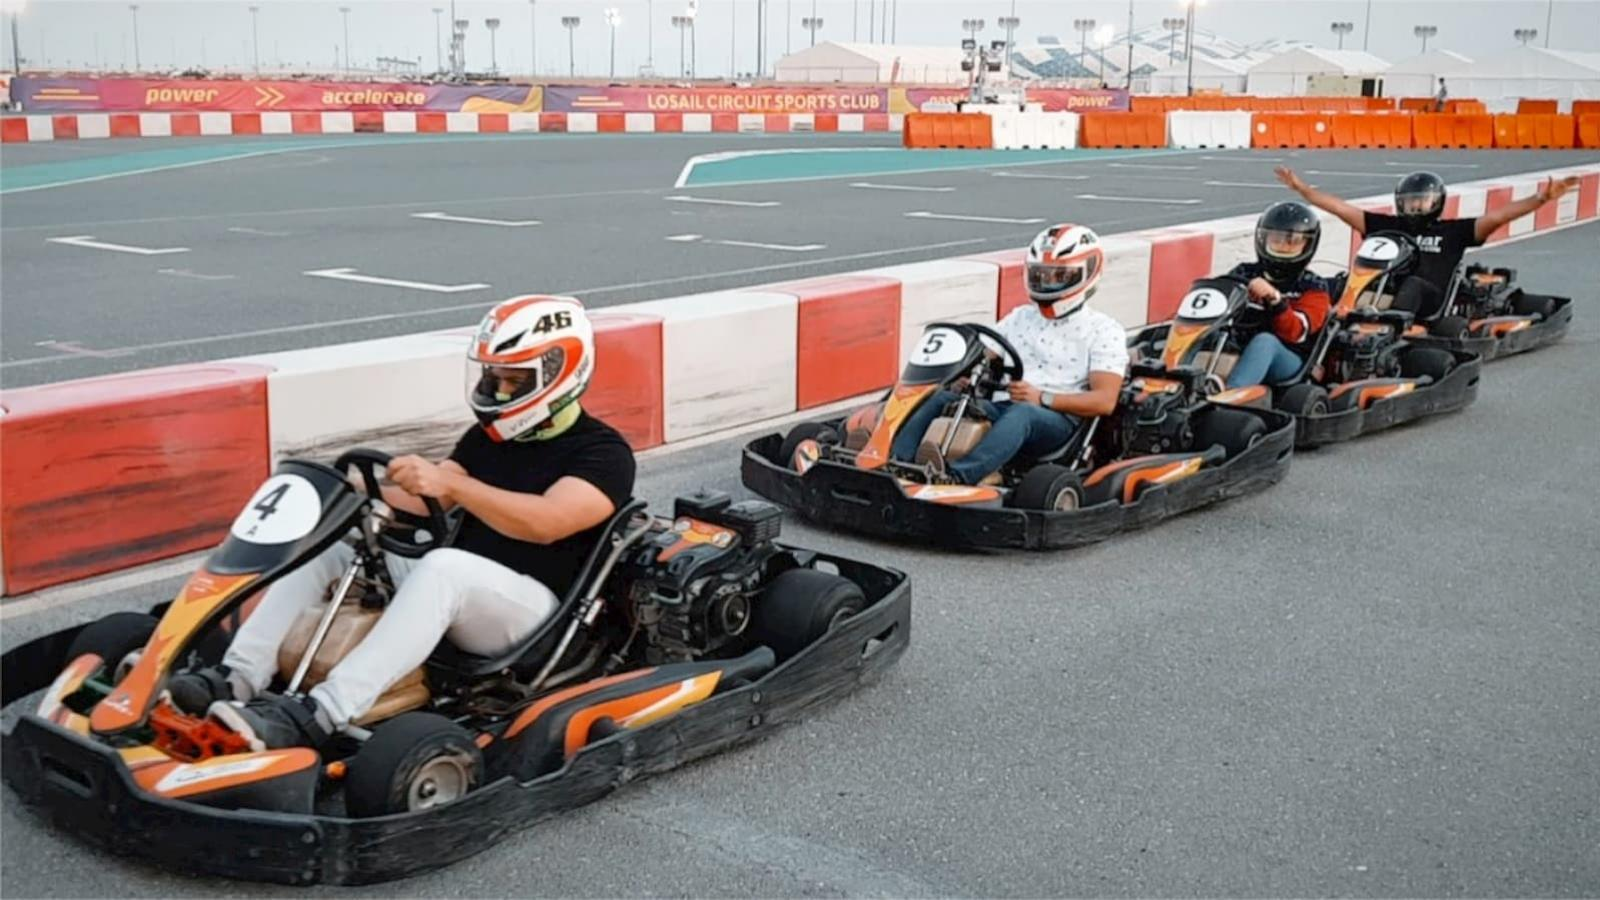 Losail Circuit announces cancellation of National Sports Day activities